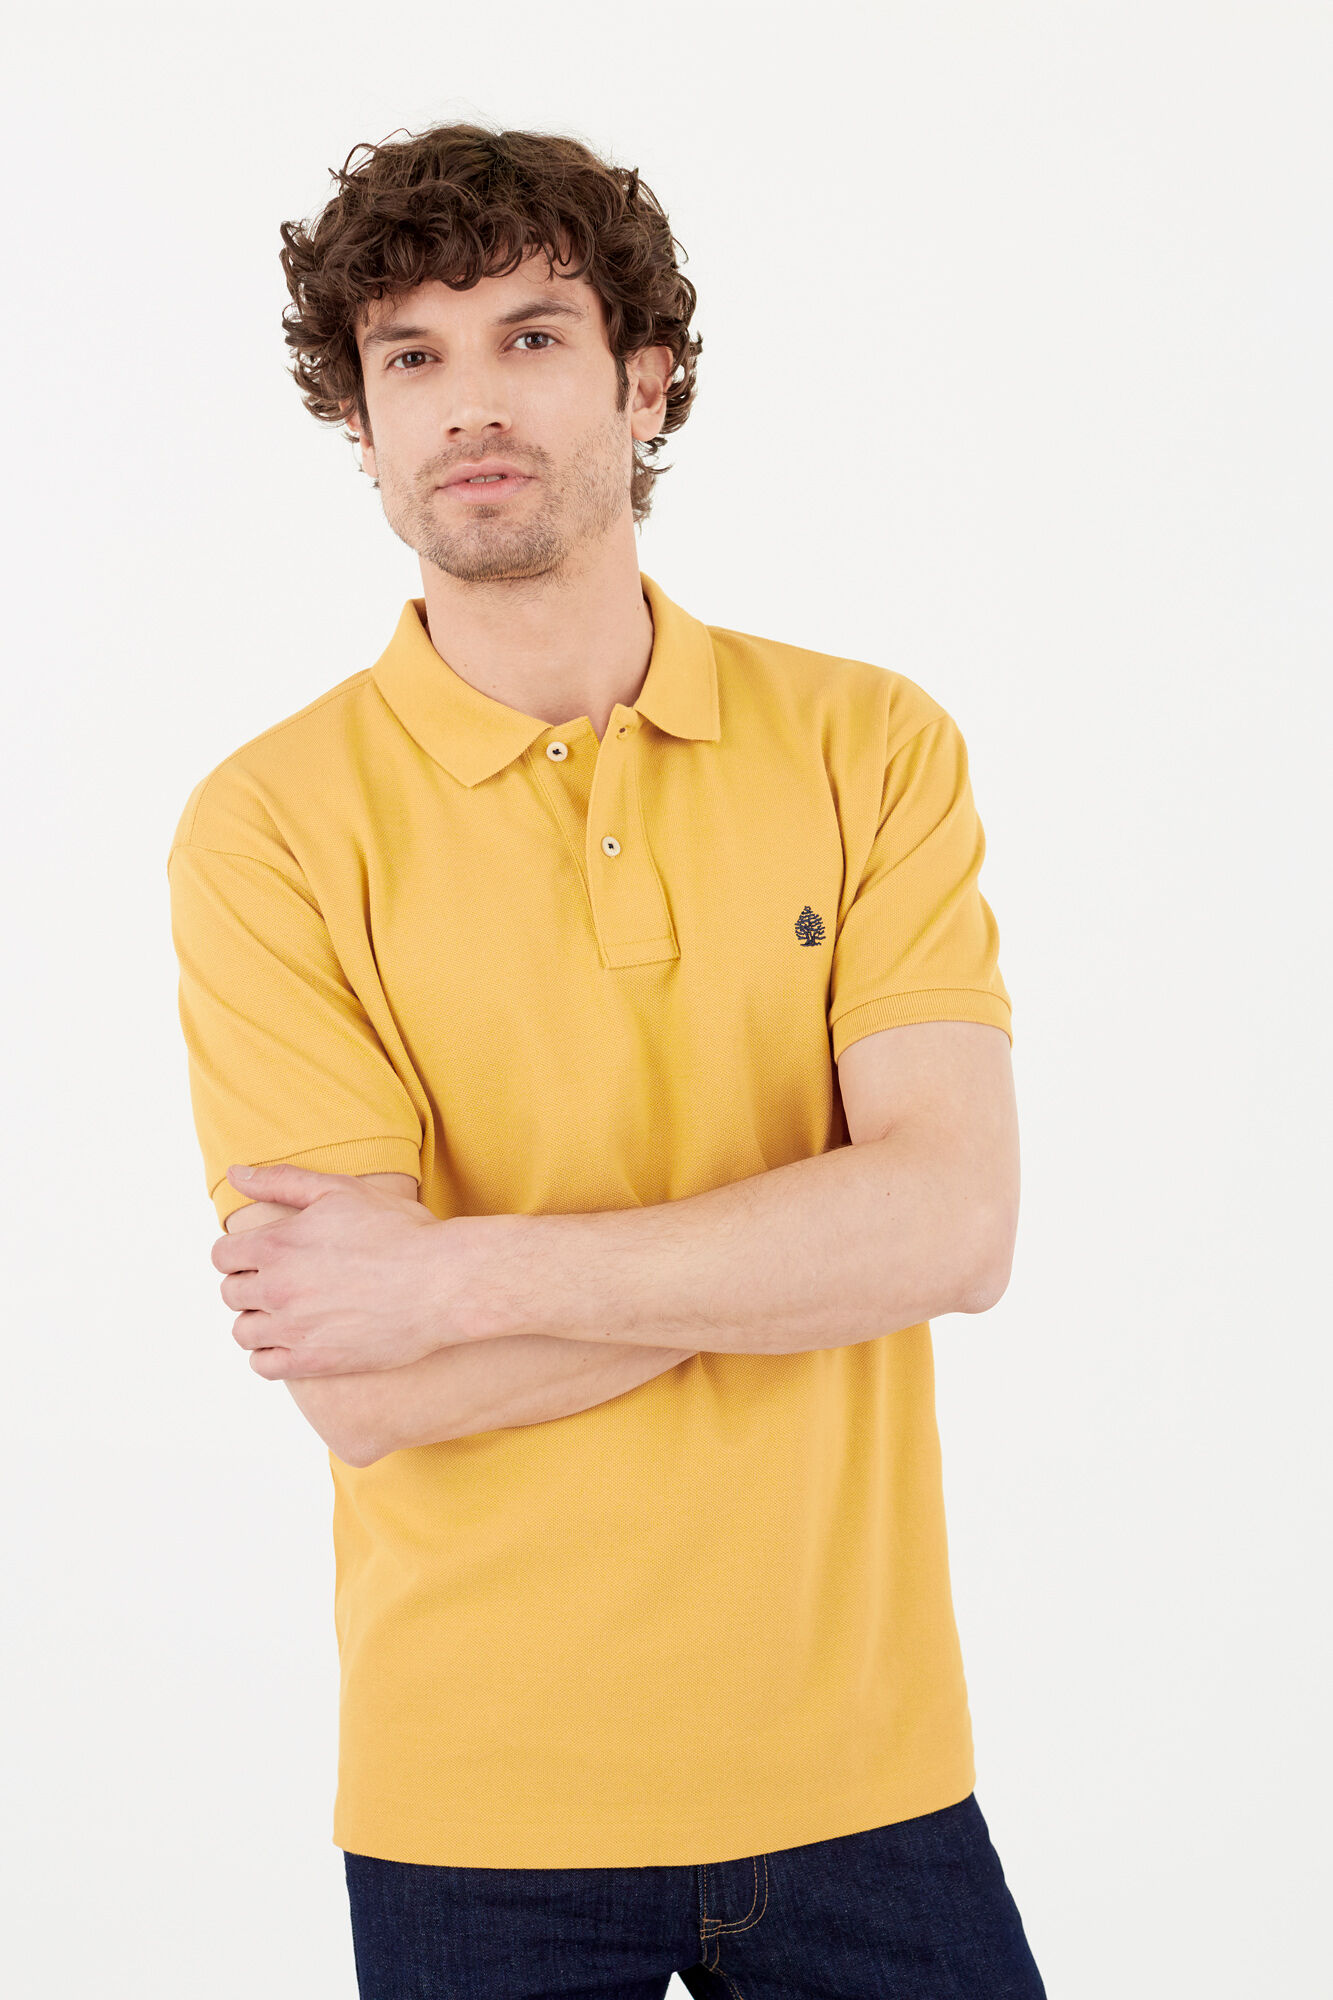 Outlet Polos Hombre Fifty de Outlet 4BvqI4